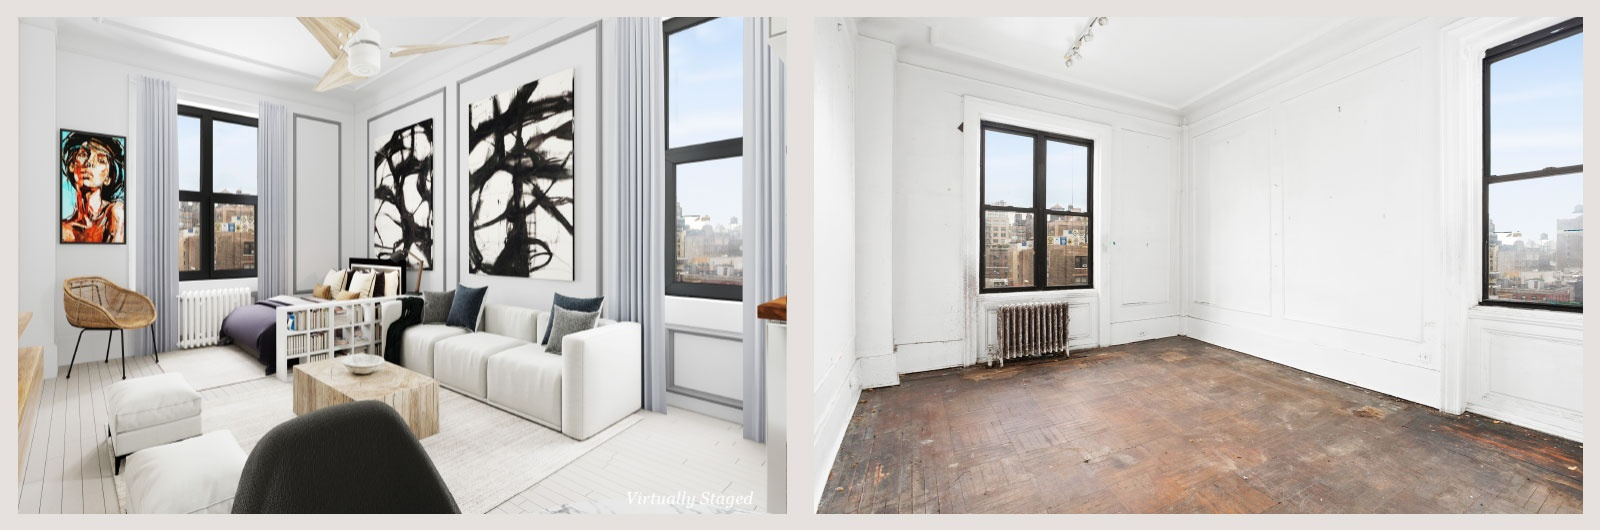 Before and After Home Staging Services Brooklyn by DDG Design Studio Inc